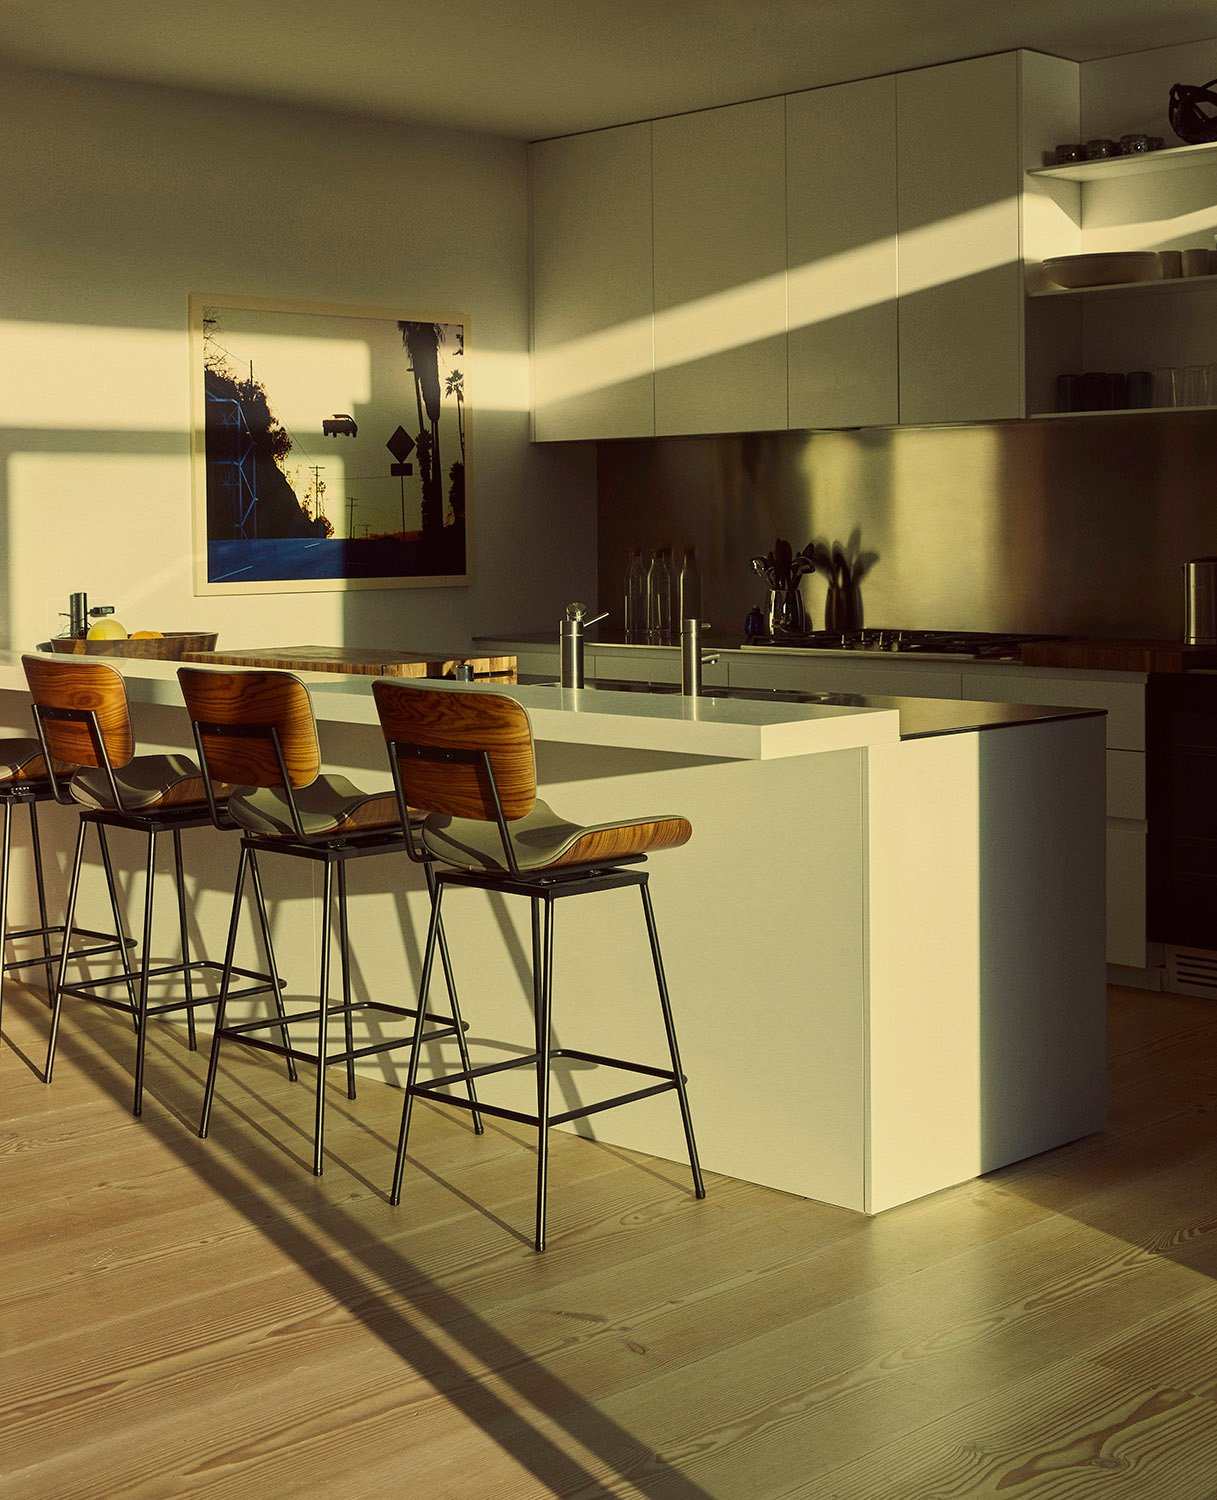 The appliances are by Miele and the Cojo stools are by Thomas Hayes. Miller Mobley